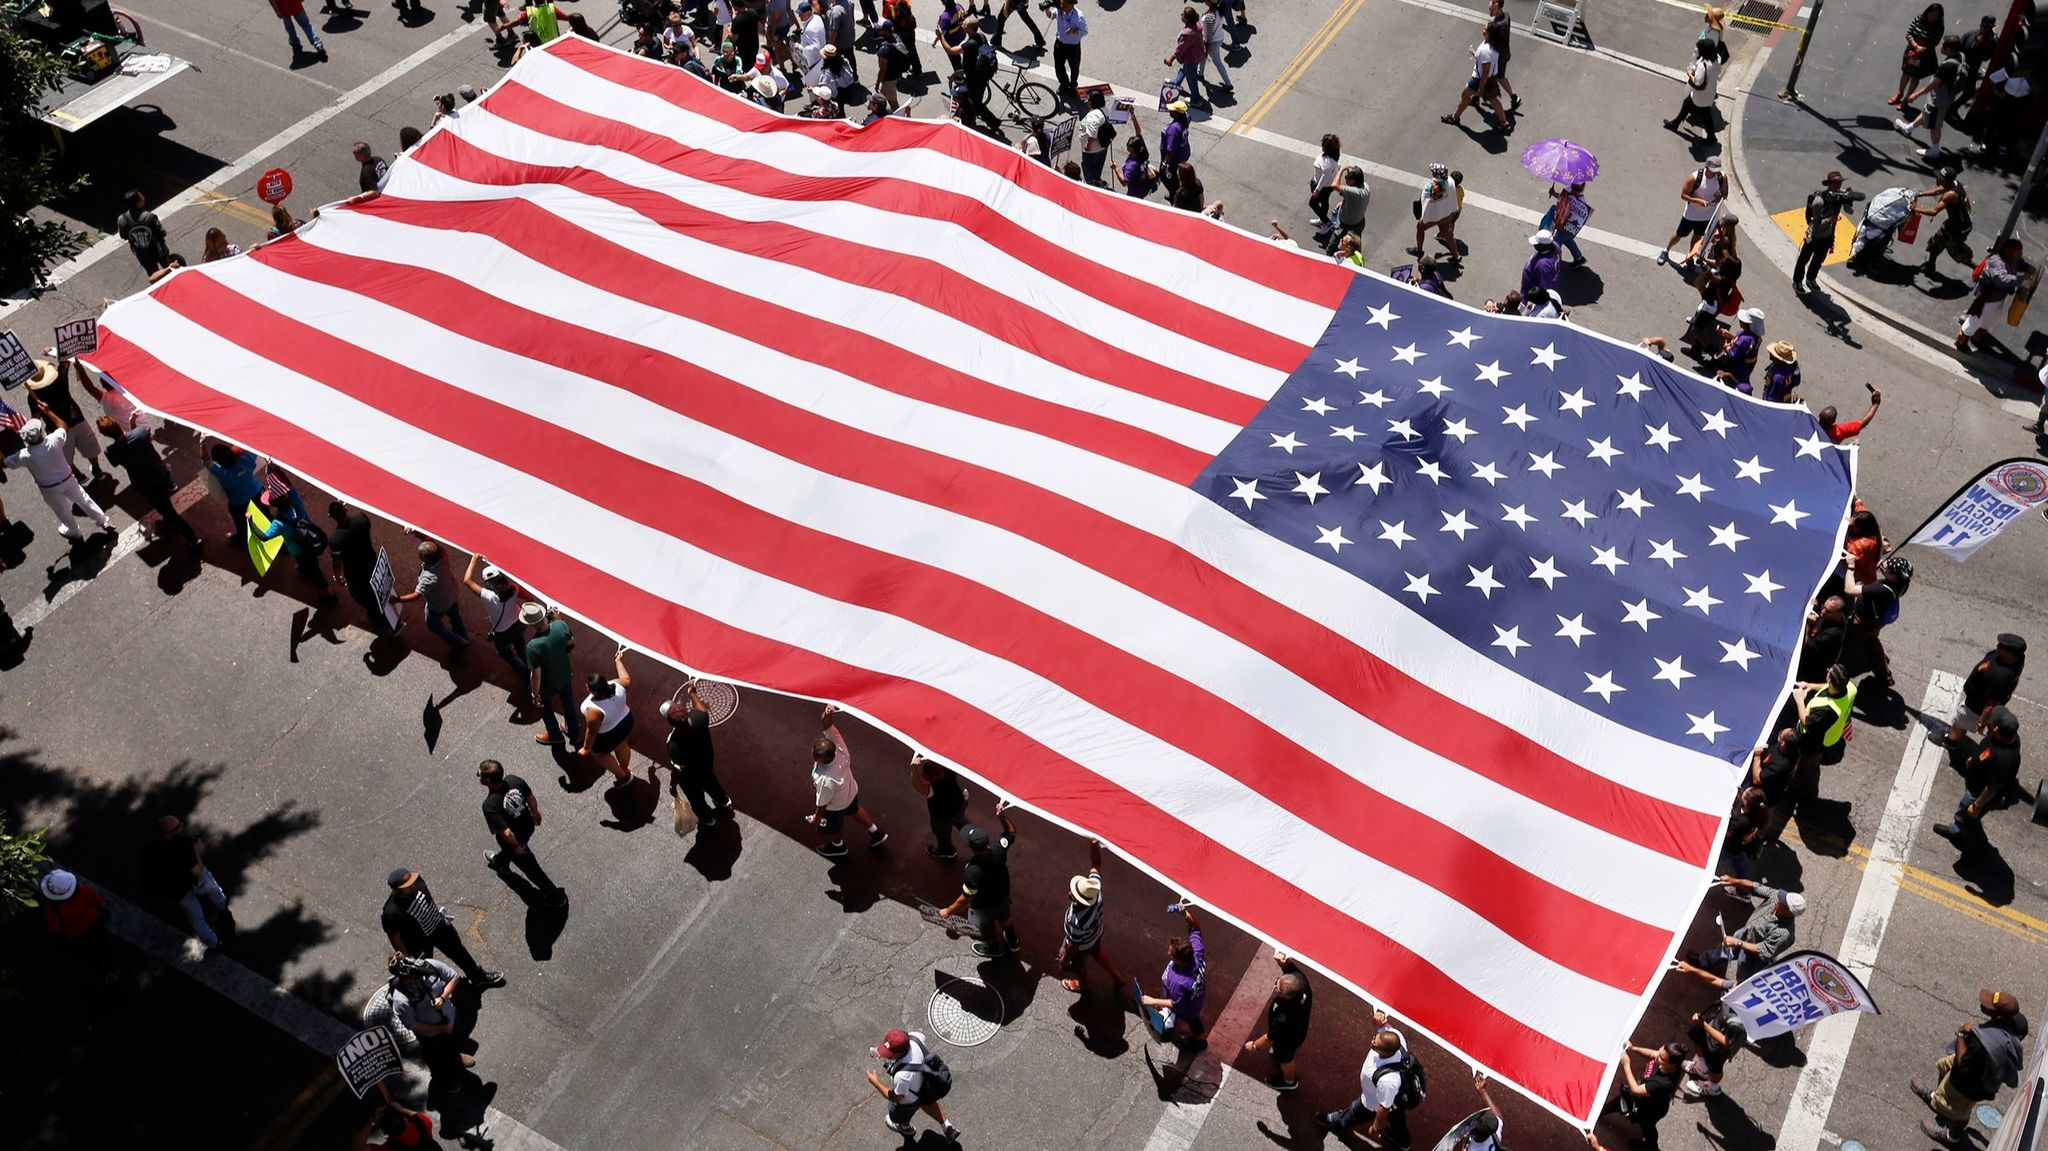 Marchers carry a giant American flag at the start of the May Day march that began at MacArthur Park.